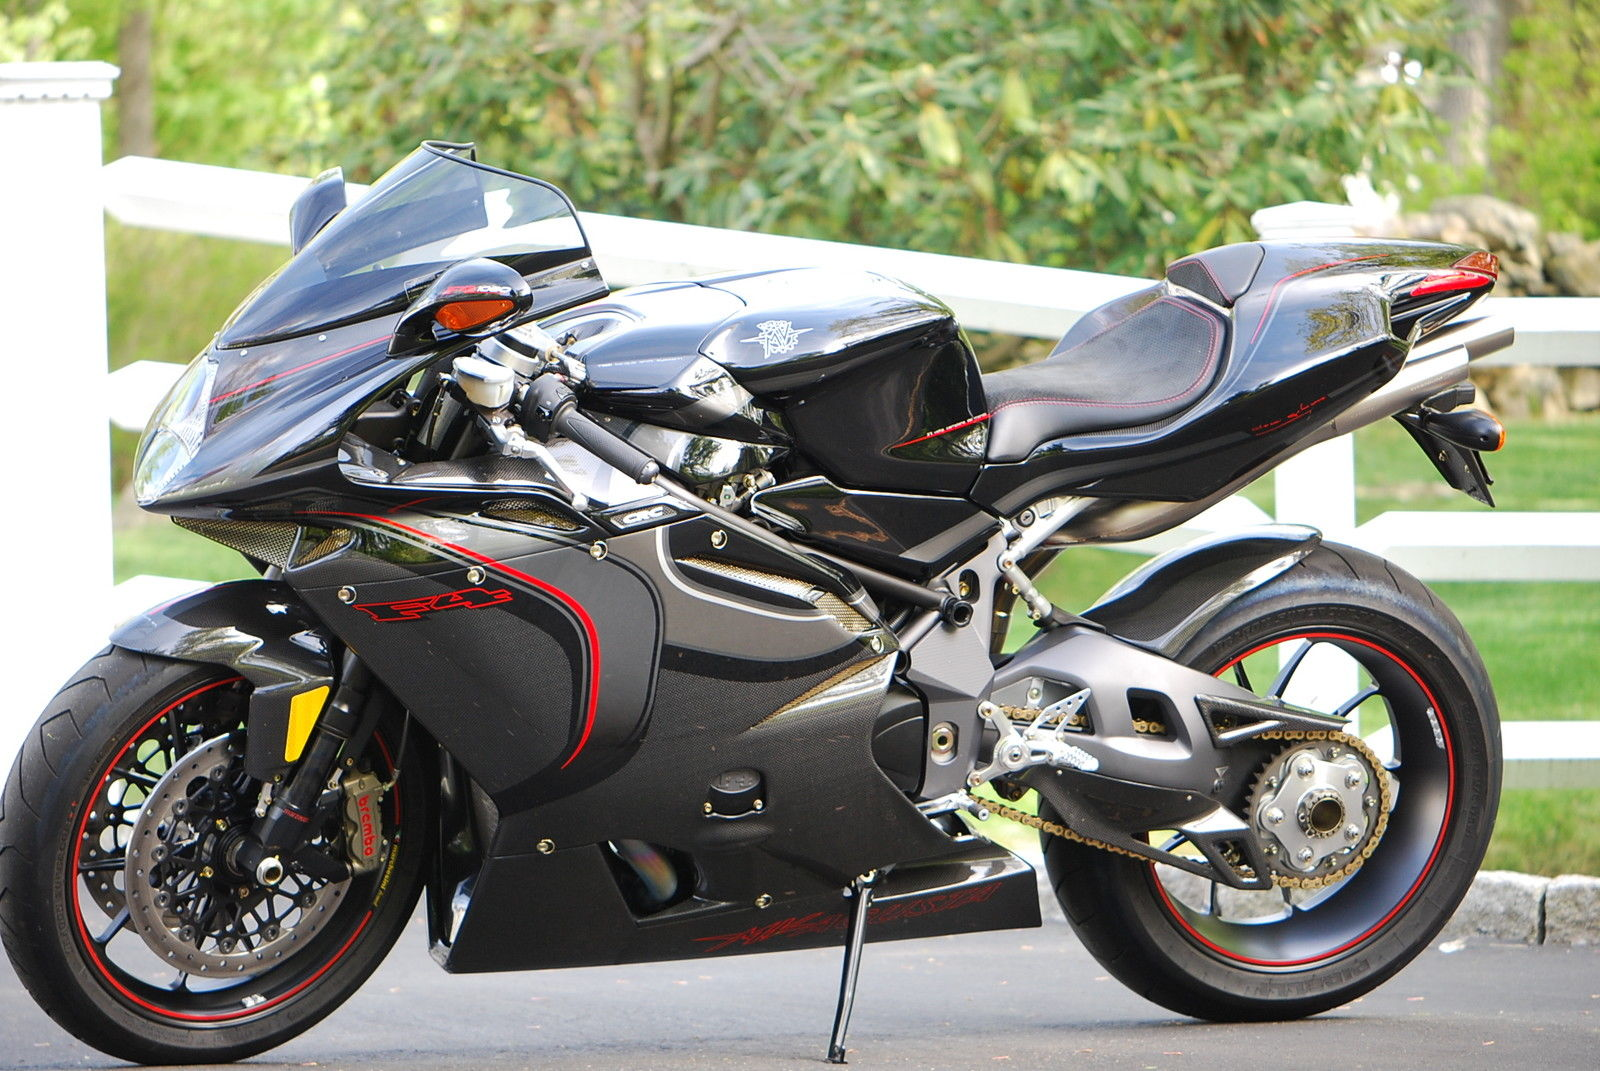 carbon copy 2006 mv agusta f4cc rare sportbikes for sale. Black Bedroom Furniture Sets. Home Design Ideas